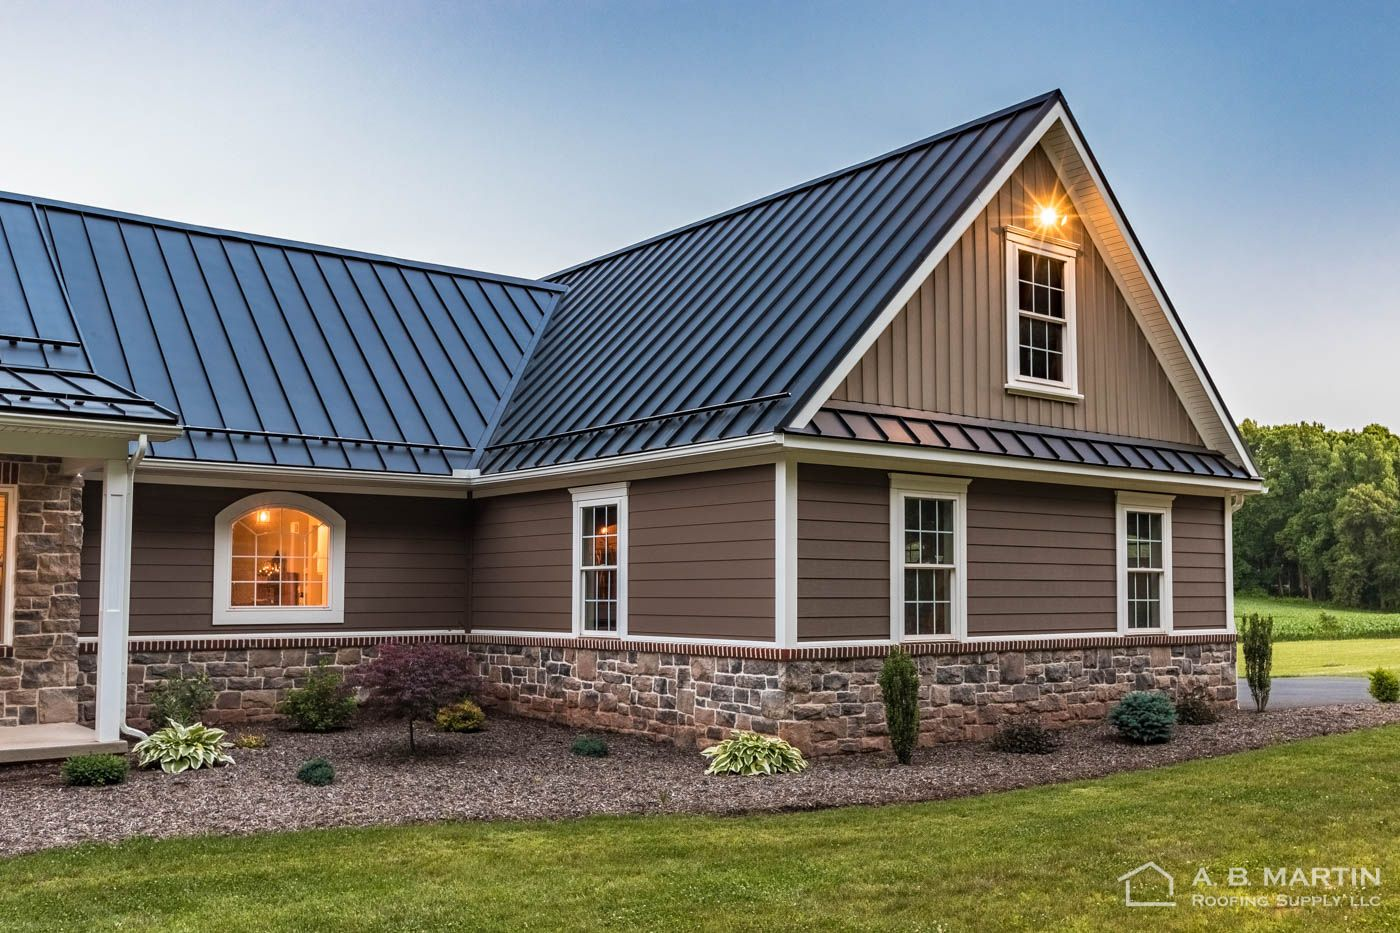 Pin By Samantha Phillips On Final House Design Metal Roof Houses Metal Roof Roof Design